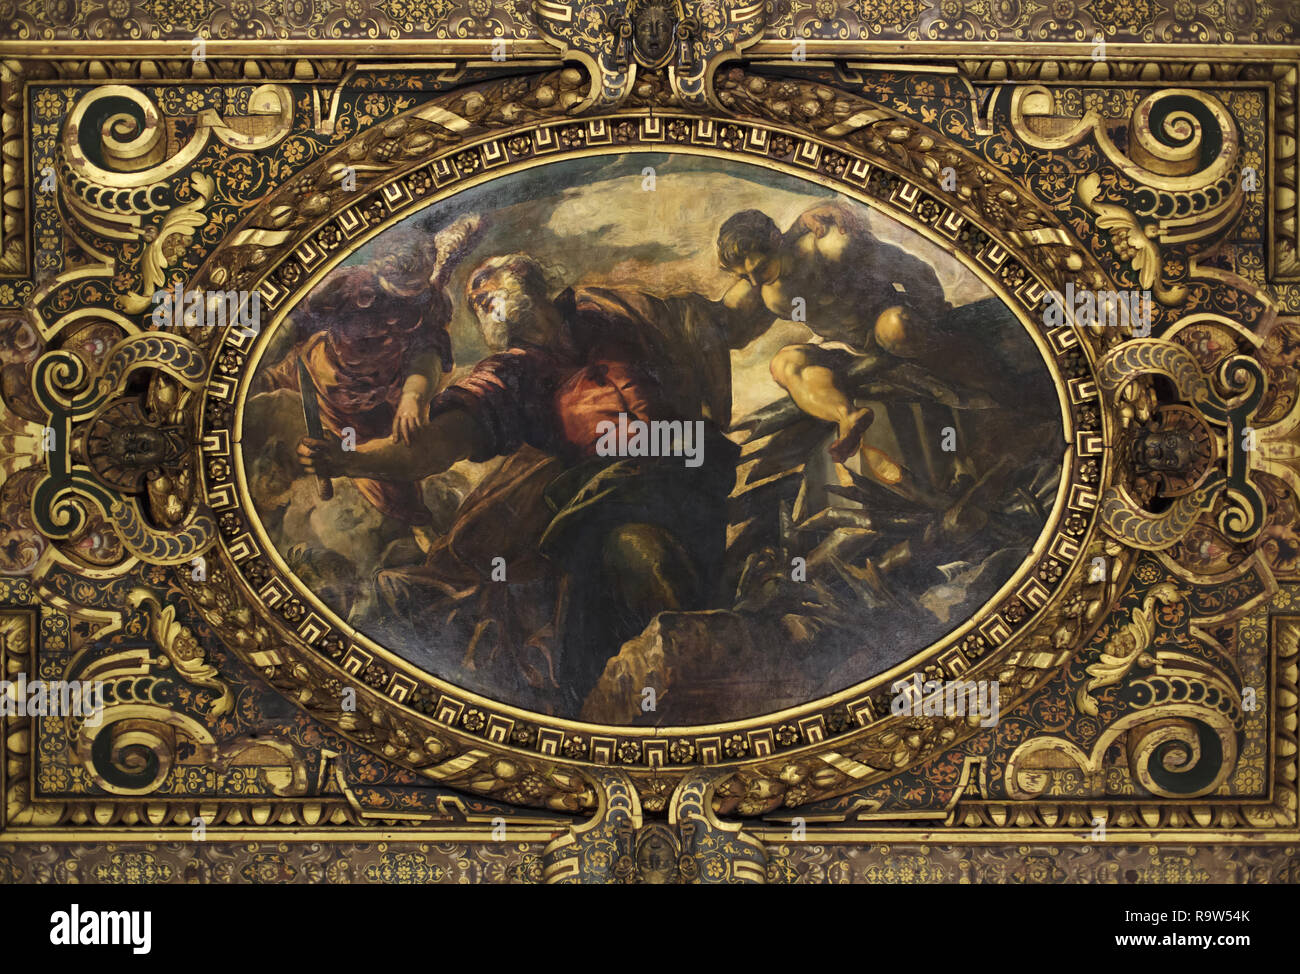 Painting 'Sacrifice of Isaac' by Venetian Renaissance painter Jacopo Robusti called Tintoretto (1577-1578) on the ceiling of the Chapter Room (Sala Capitolare) in the Scuola Grande di San Rocco in Venice, Italy. - Stock Image